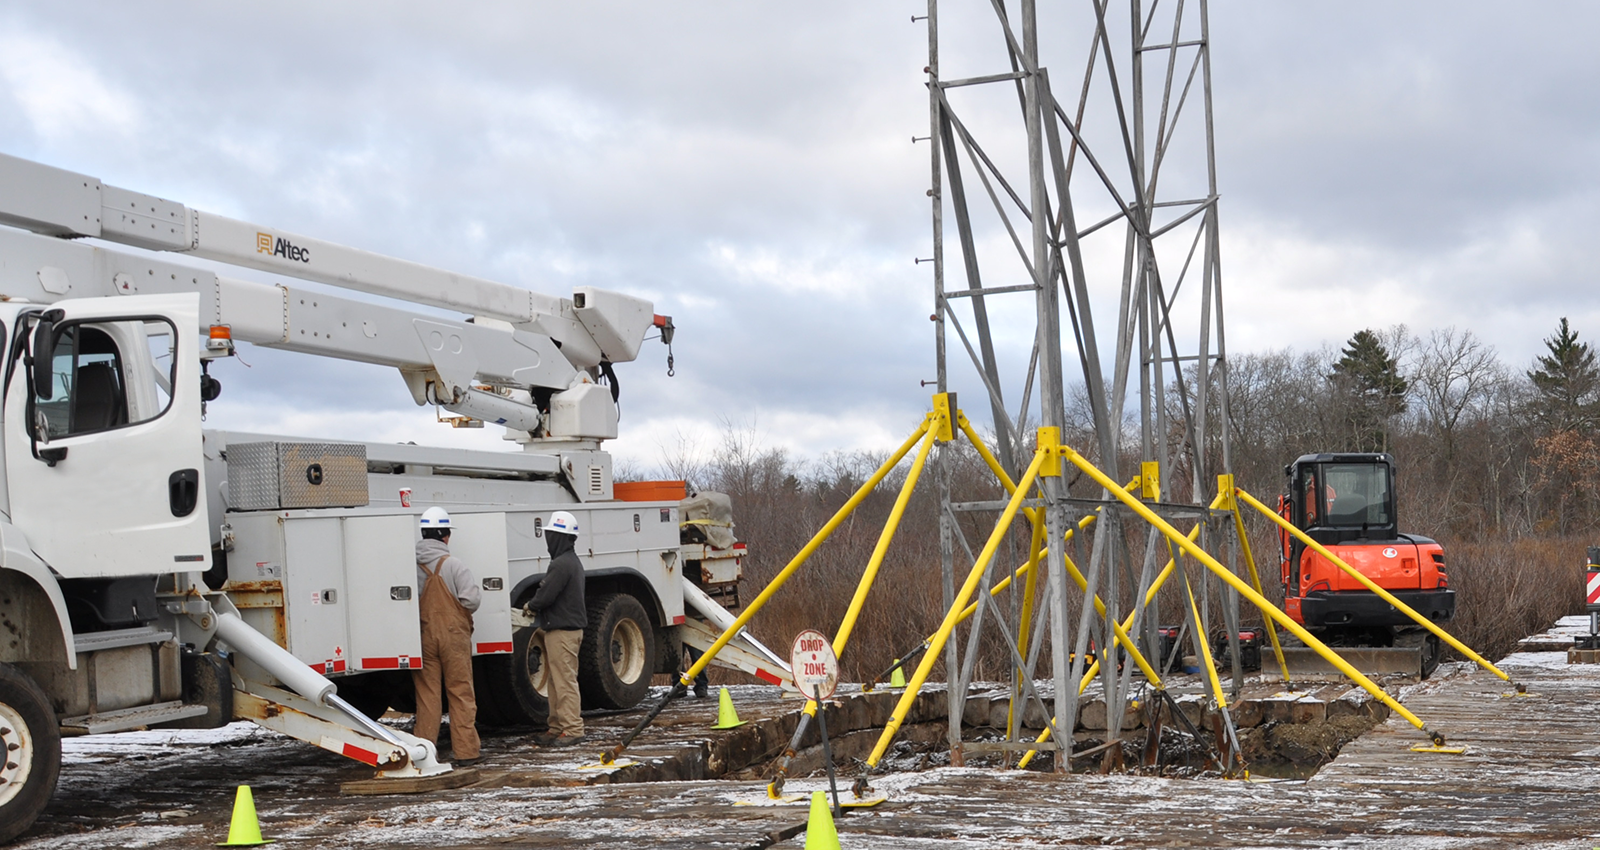 Aucoin Telecom & Utility Construction protects assets in the telecom and power industry